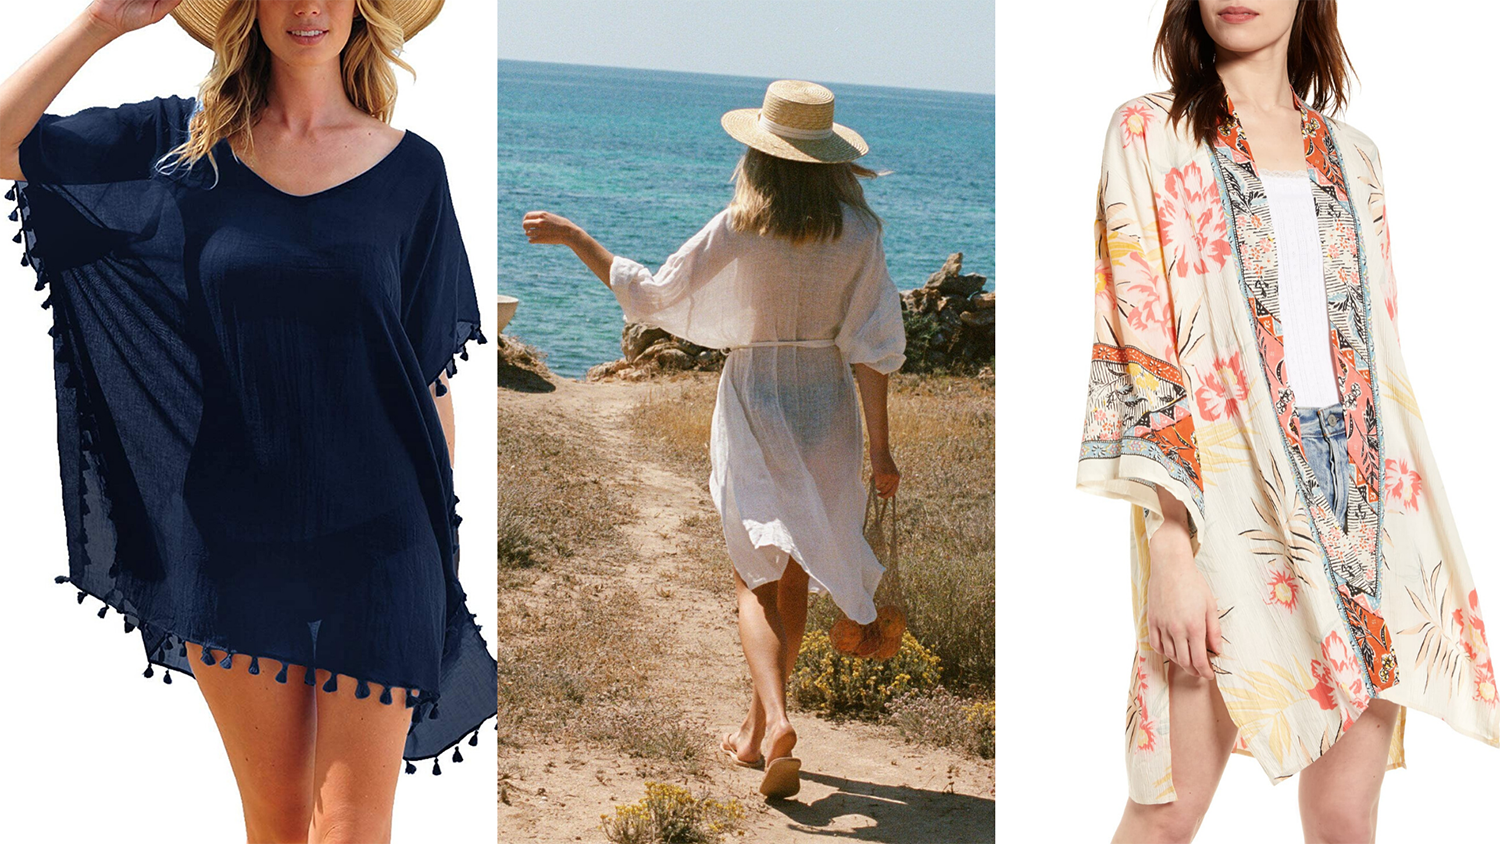 6 Beach Cover-Ups That Will Protect You From the Sun in Style